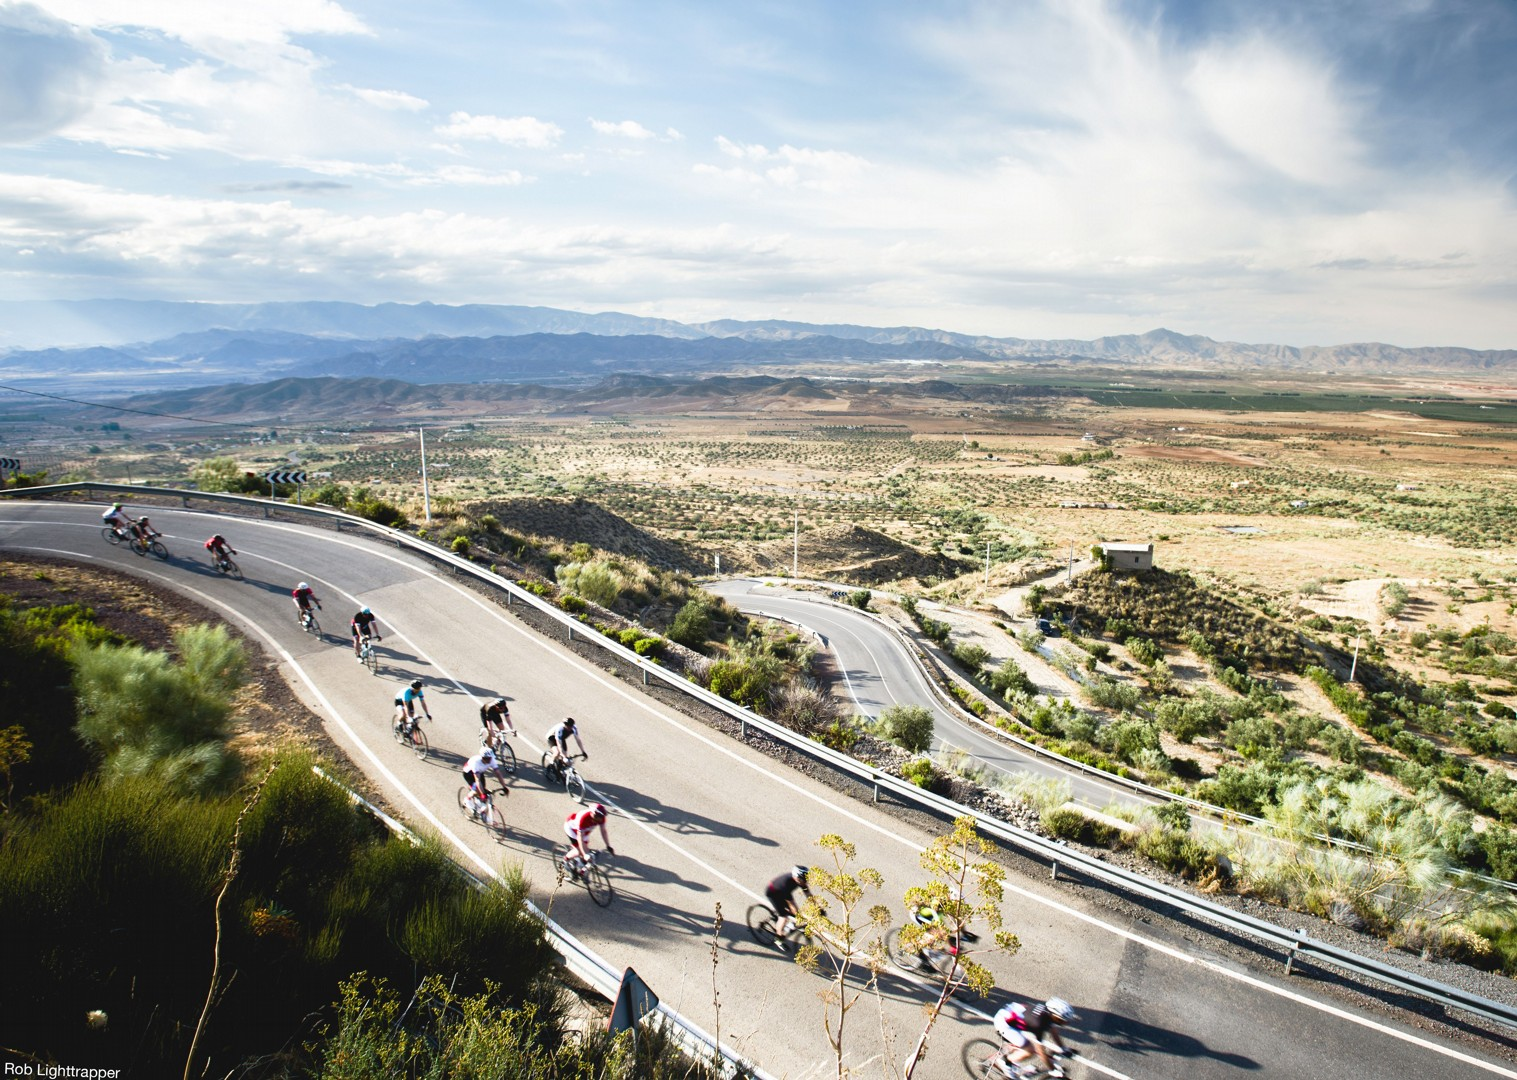 guided-road-cycling-holiday-cape-to-cape-traverse-andalucia-spain.jpg - Southern Spain - Andalucia - Cape to Cape Traverse - Guided Road Cycling Holiday - Road Cycling